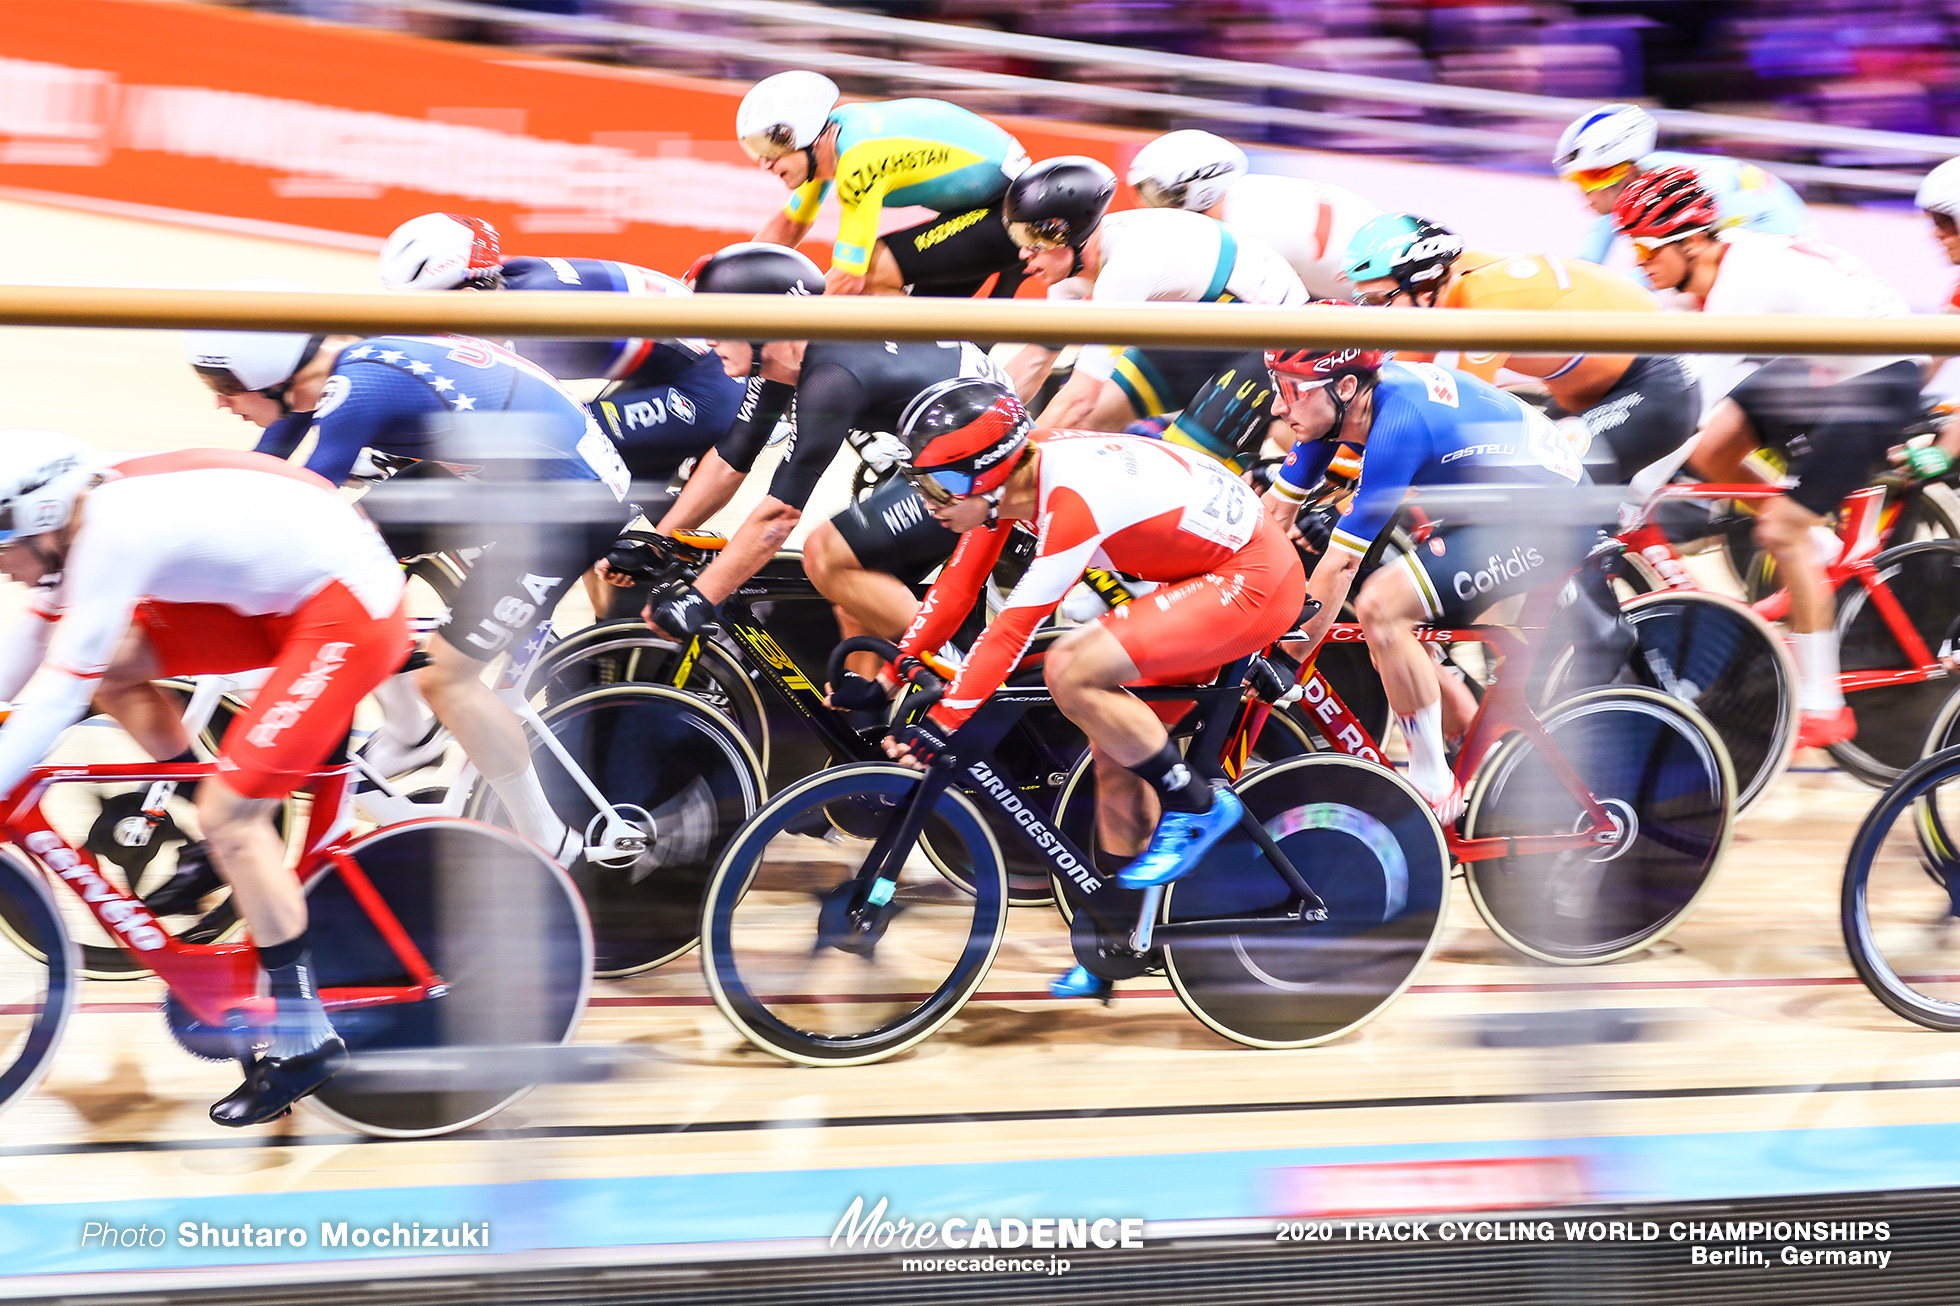 Elimination / Men's Omnium / 2020 Track Cycling World Championships, Hashimoto Eiya 橋本英也